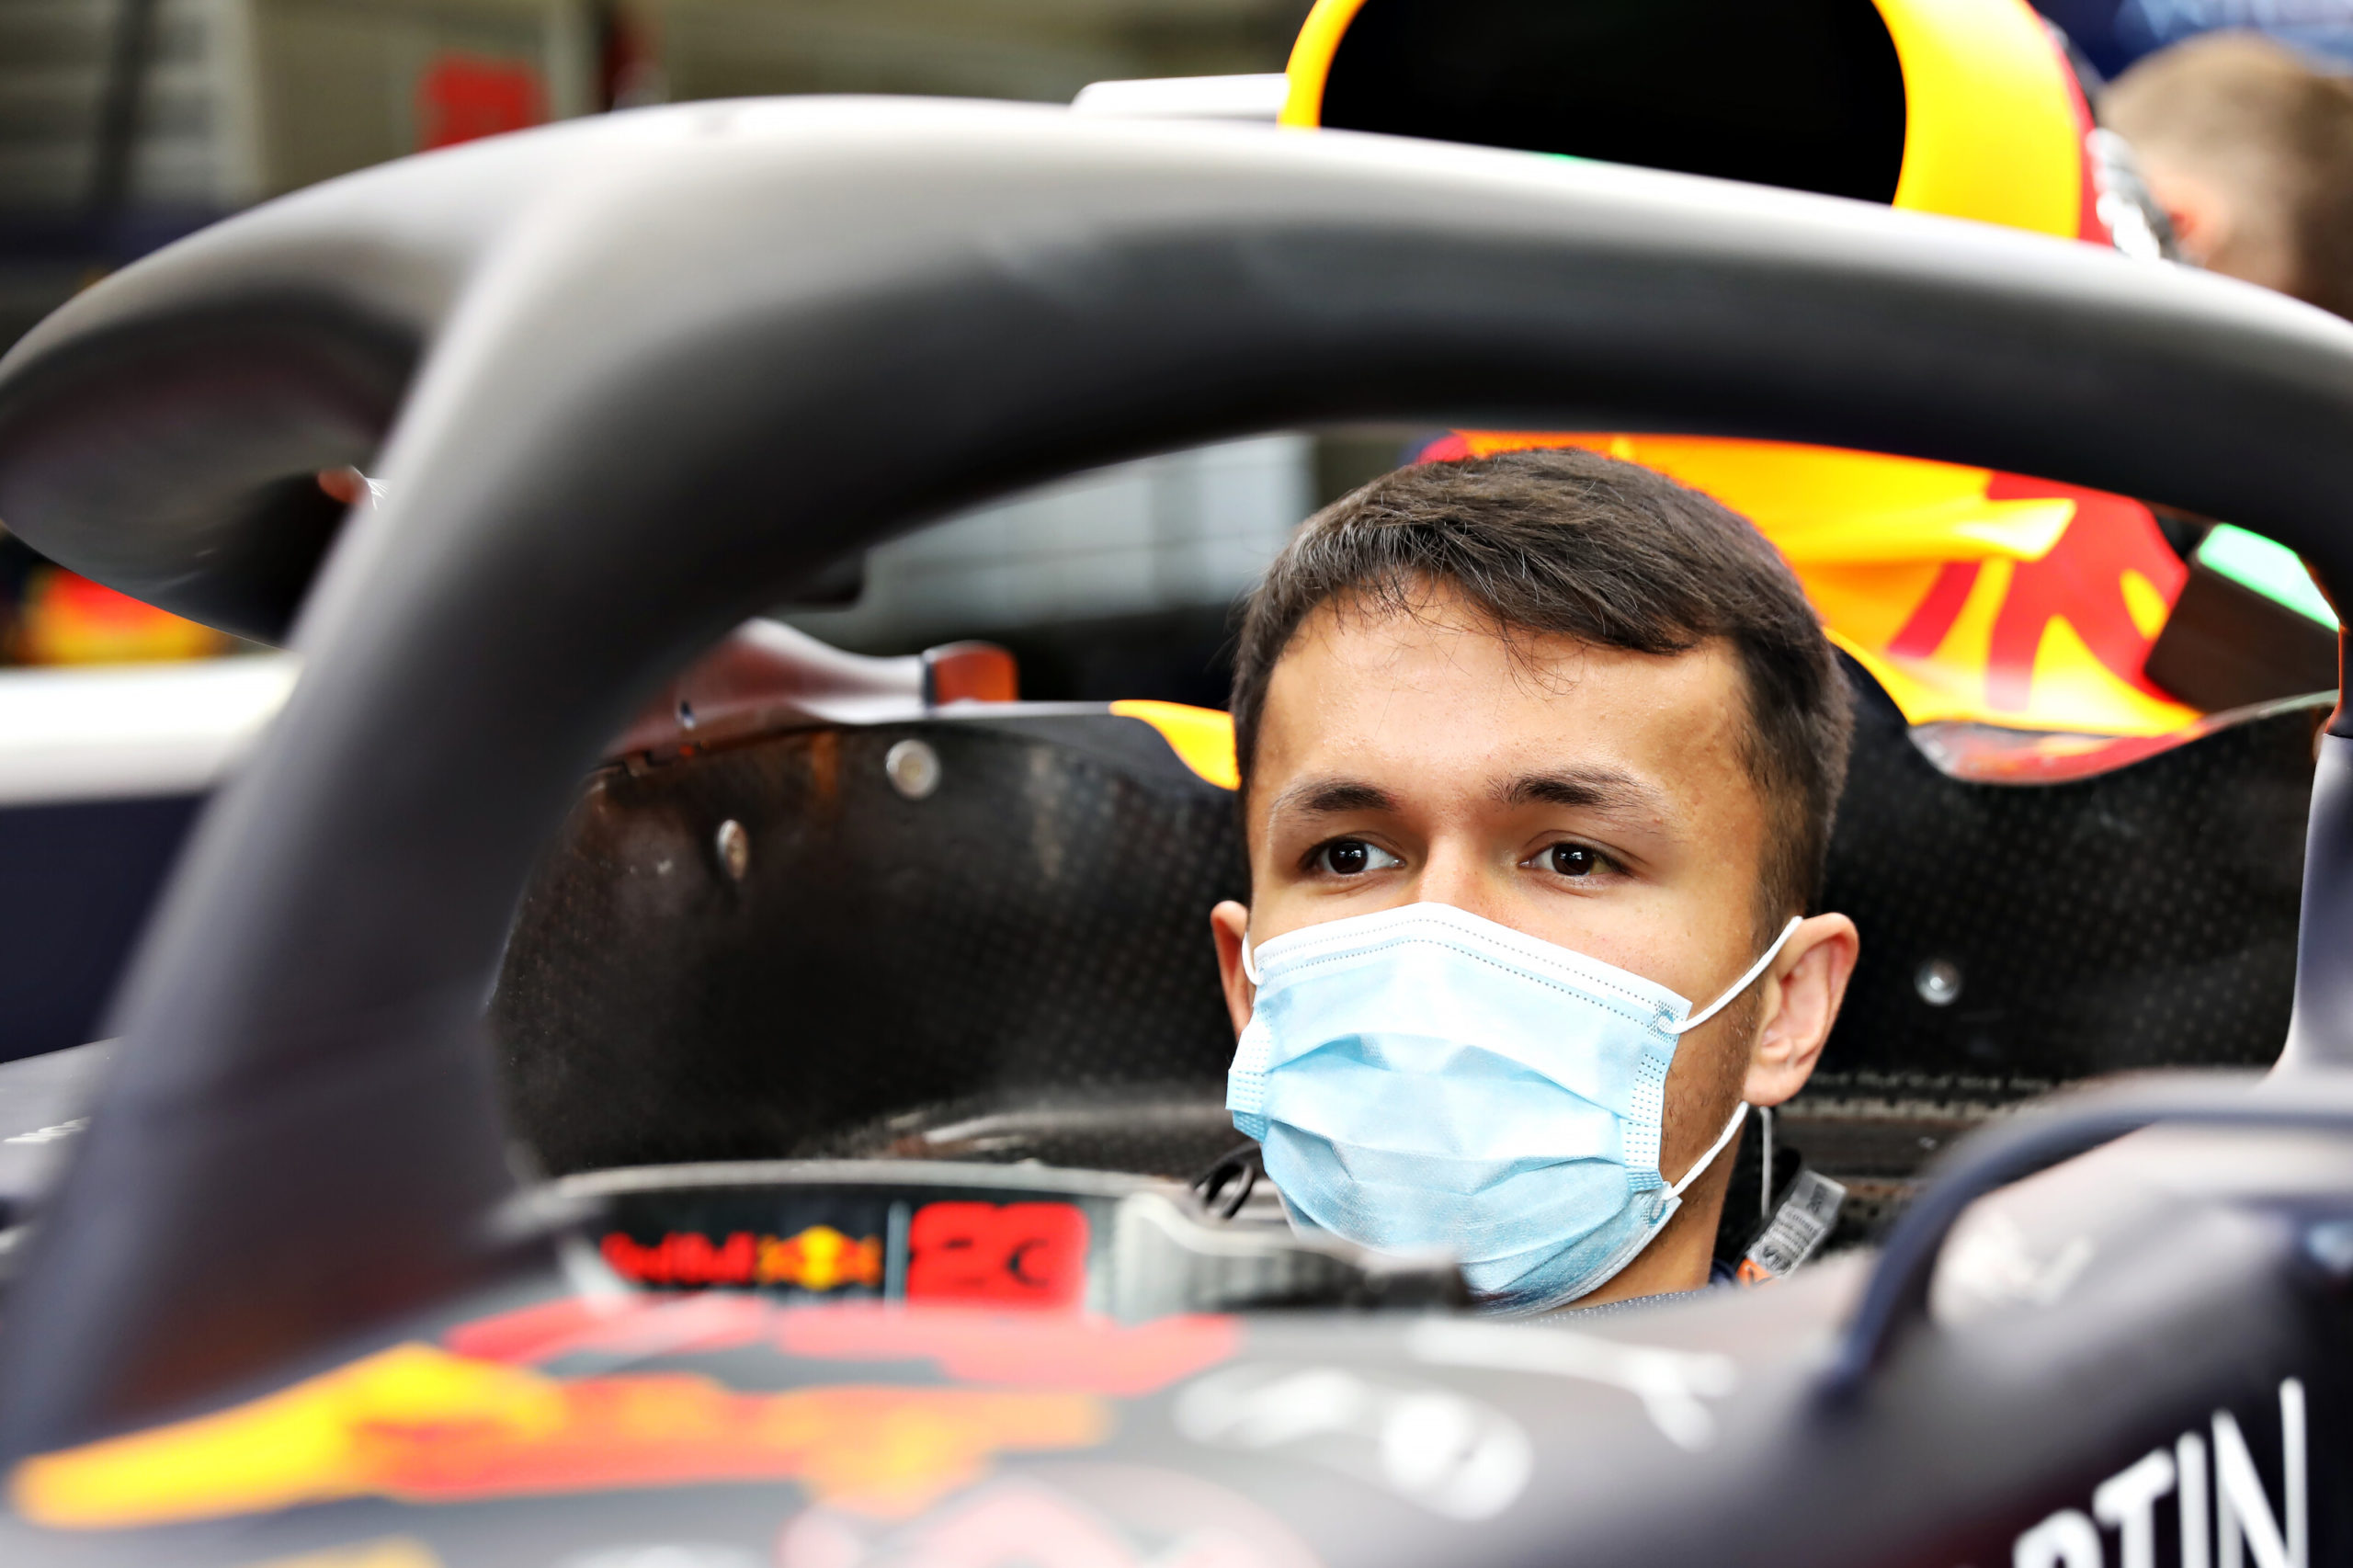 SPIELBERG, AUSTRIA - JULY 02: Alexander Albon of Thailand and Red Bull Racing sits in his car in the garage during previews for the F1 Grand Prix of Austria at Red Bull Ring on July 02, 2020 in Spielberg, Austria. (Photo by Getty Images/Getty Images) // Getty Images / Red Bull Content Pool  // AP-24HMUC3M11W11 // Usage for editorial use only //